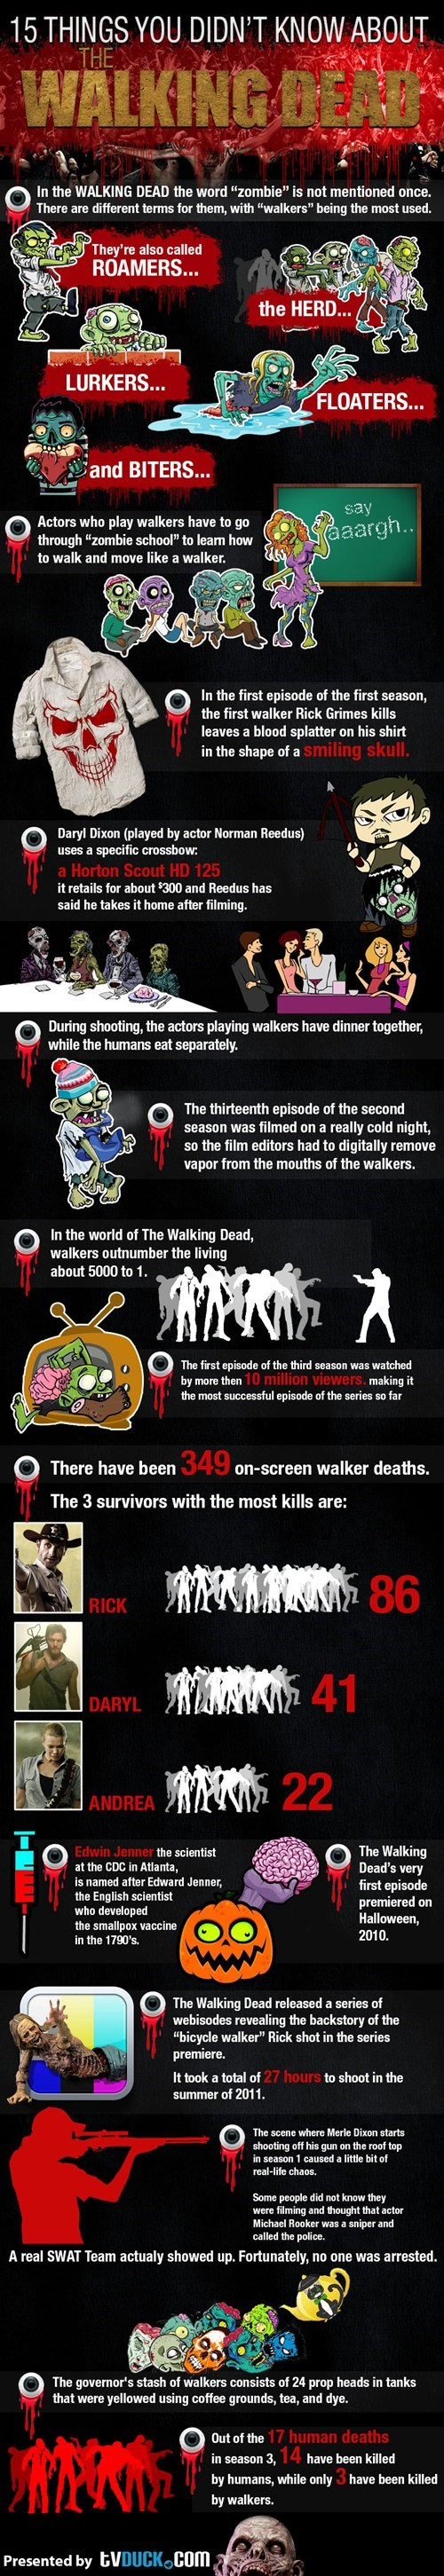 infographic,zombie,TV,The Walken Dead